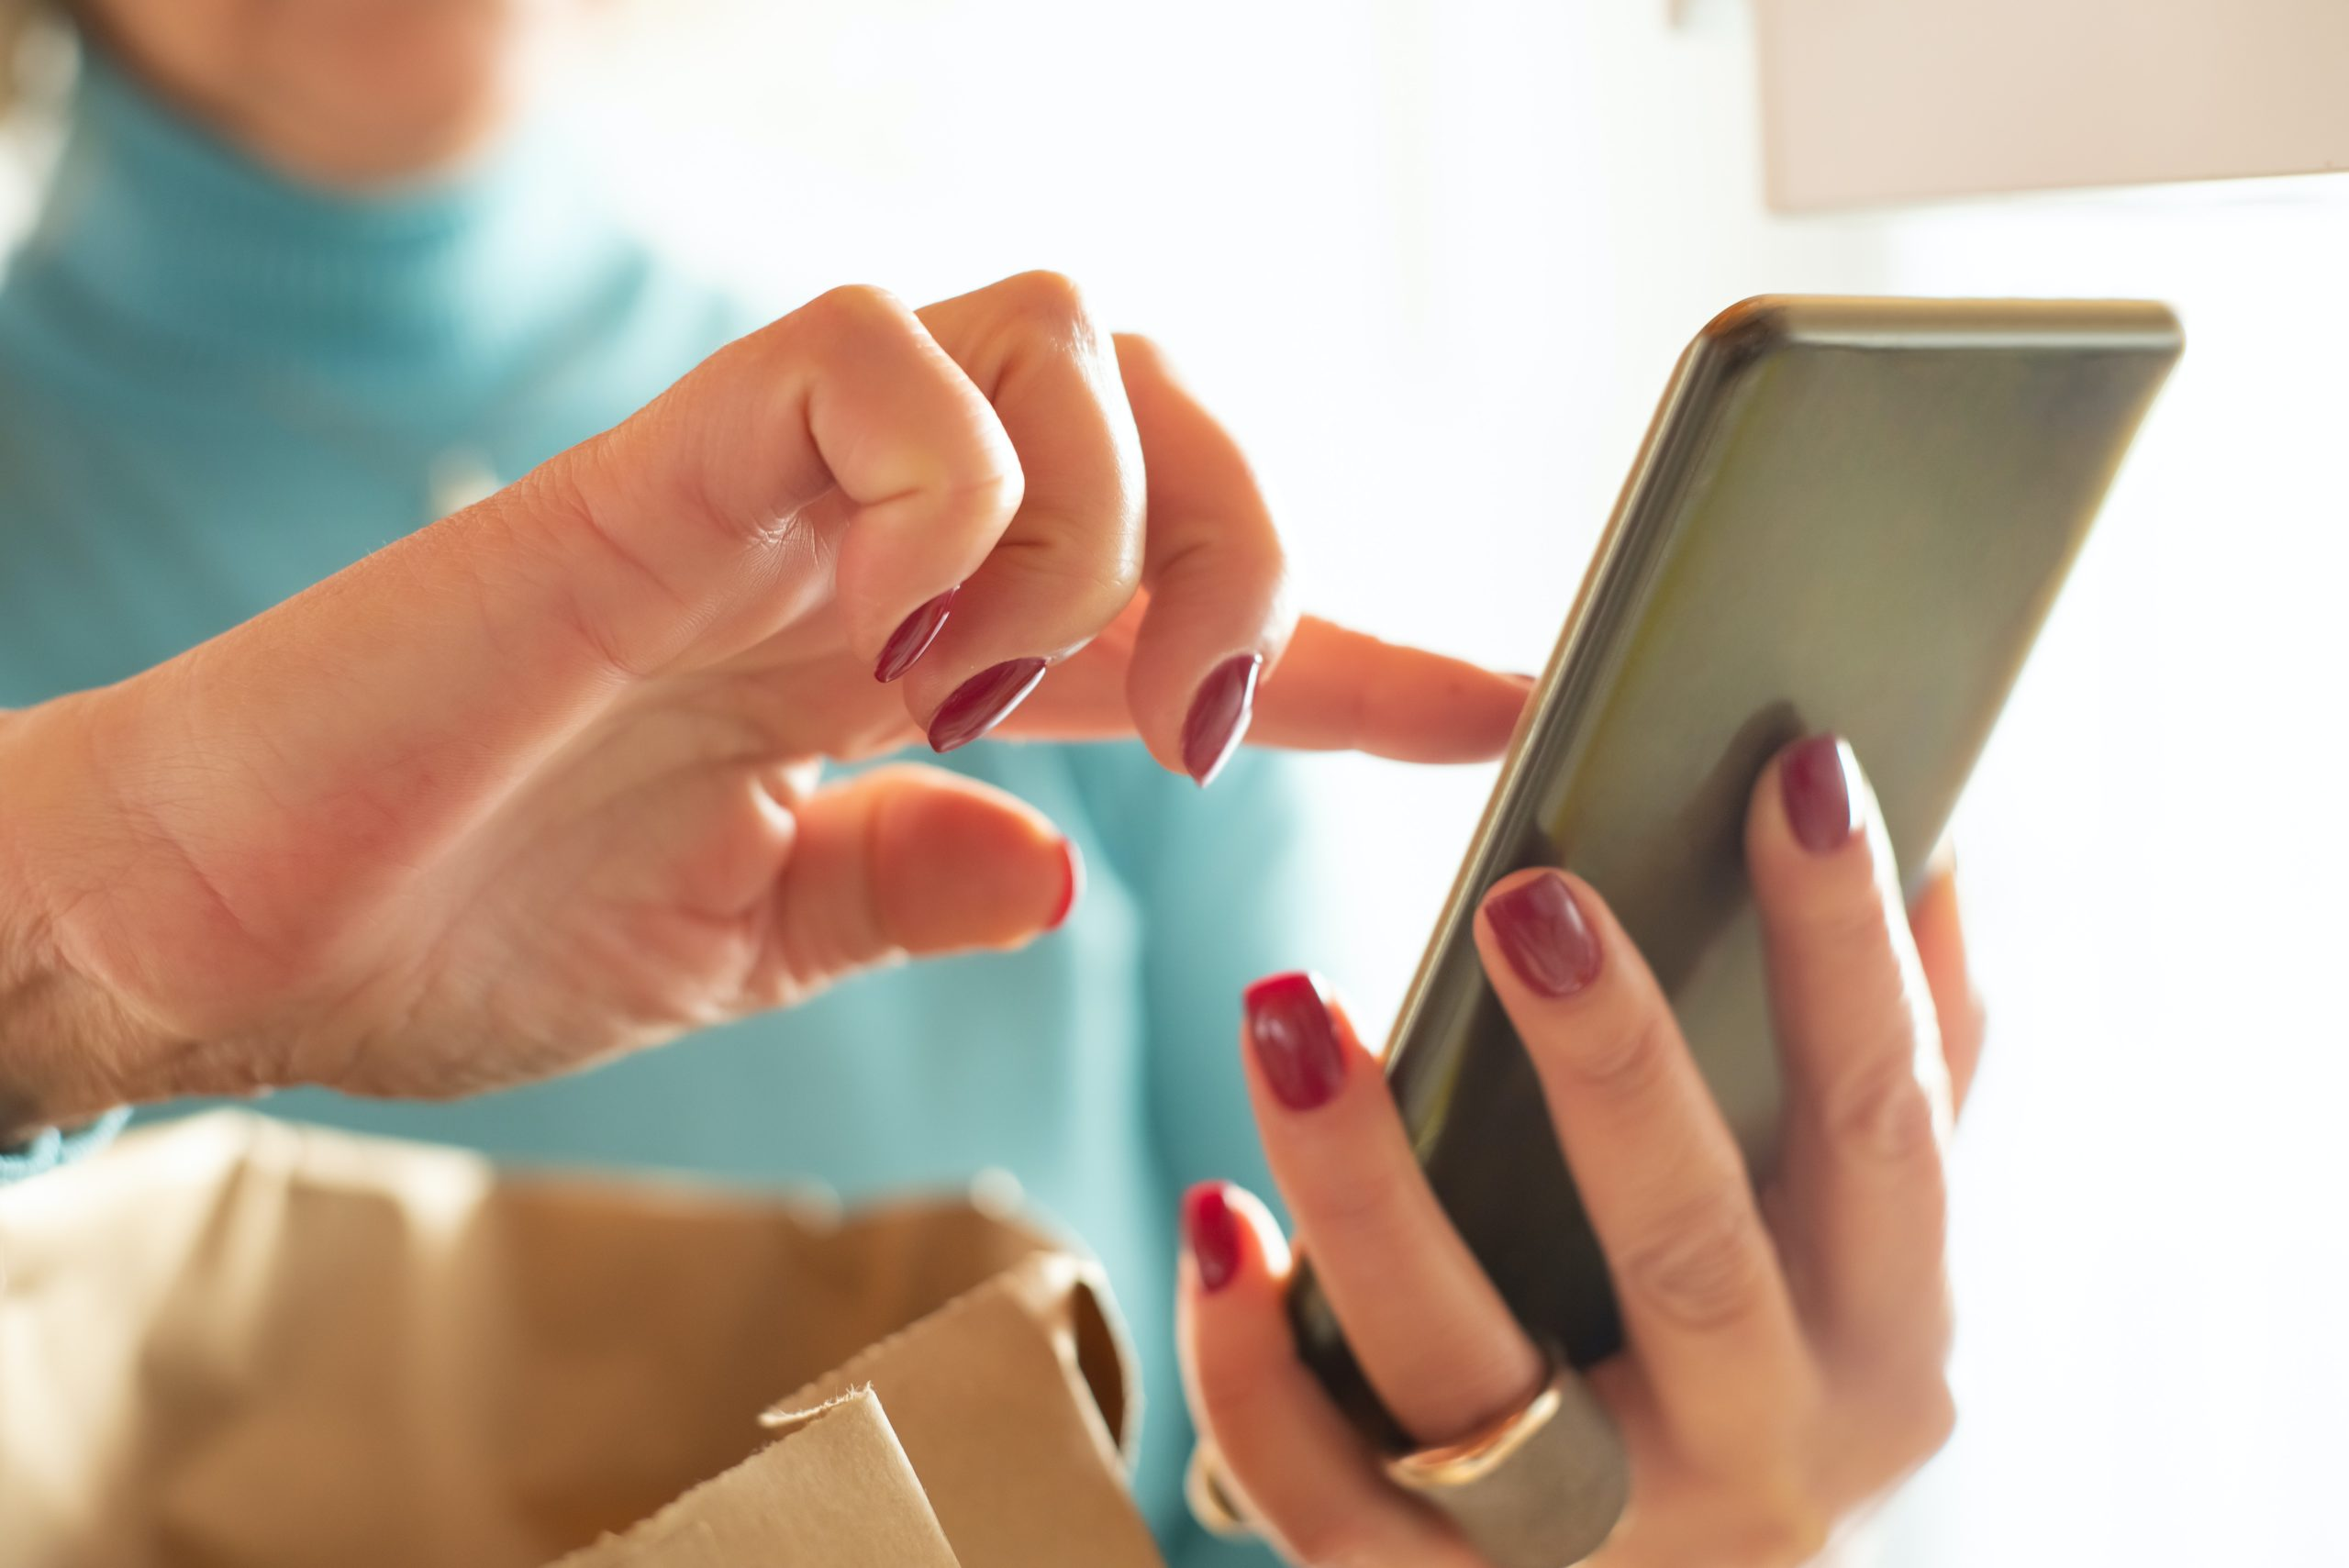 woman tapping cell phone with hand